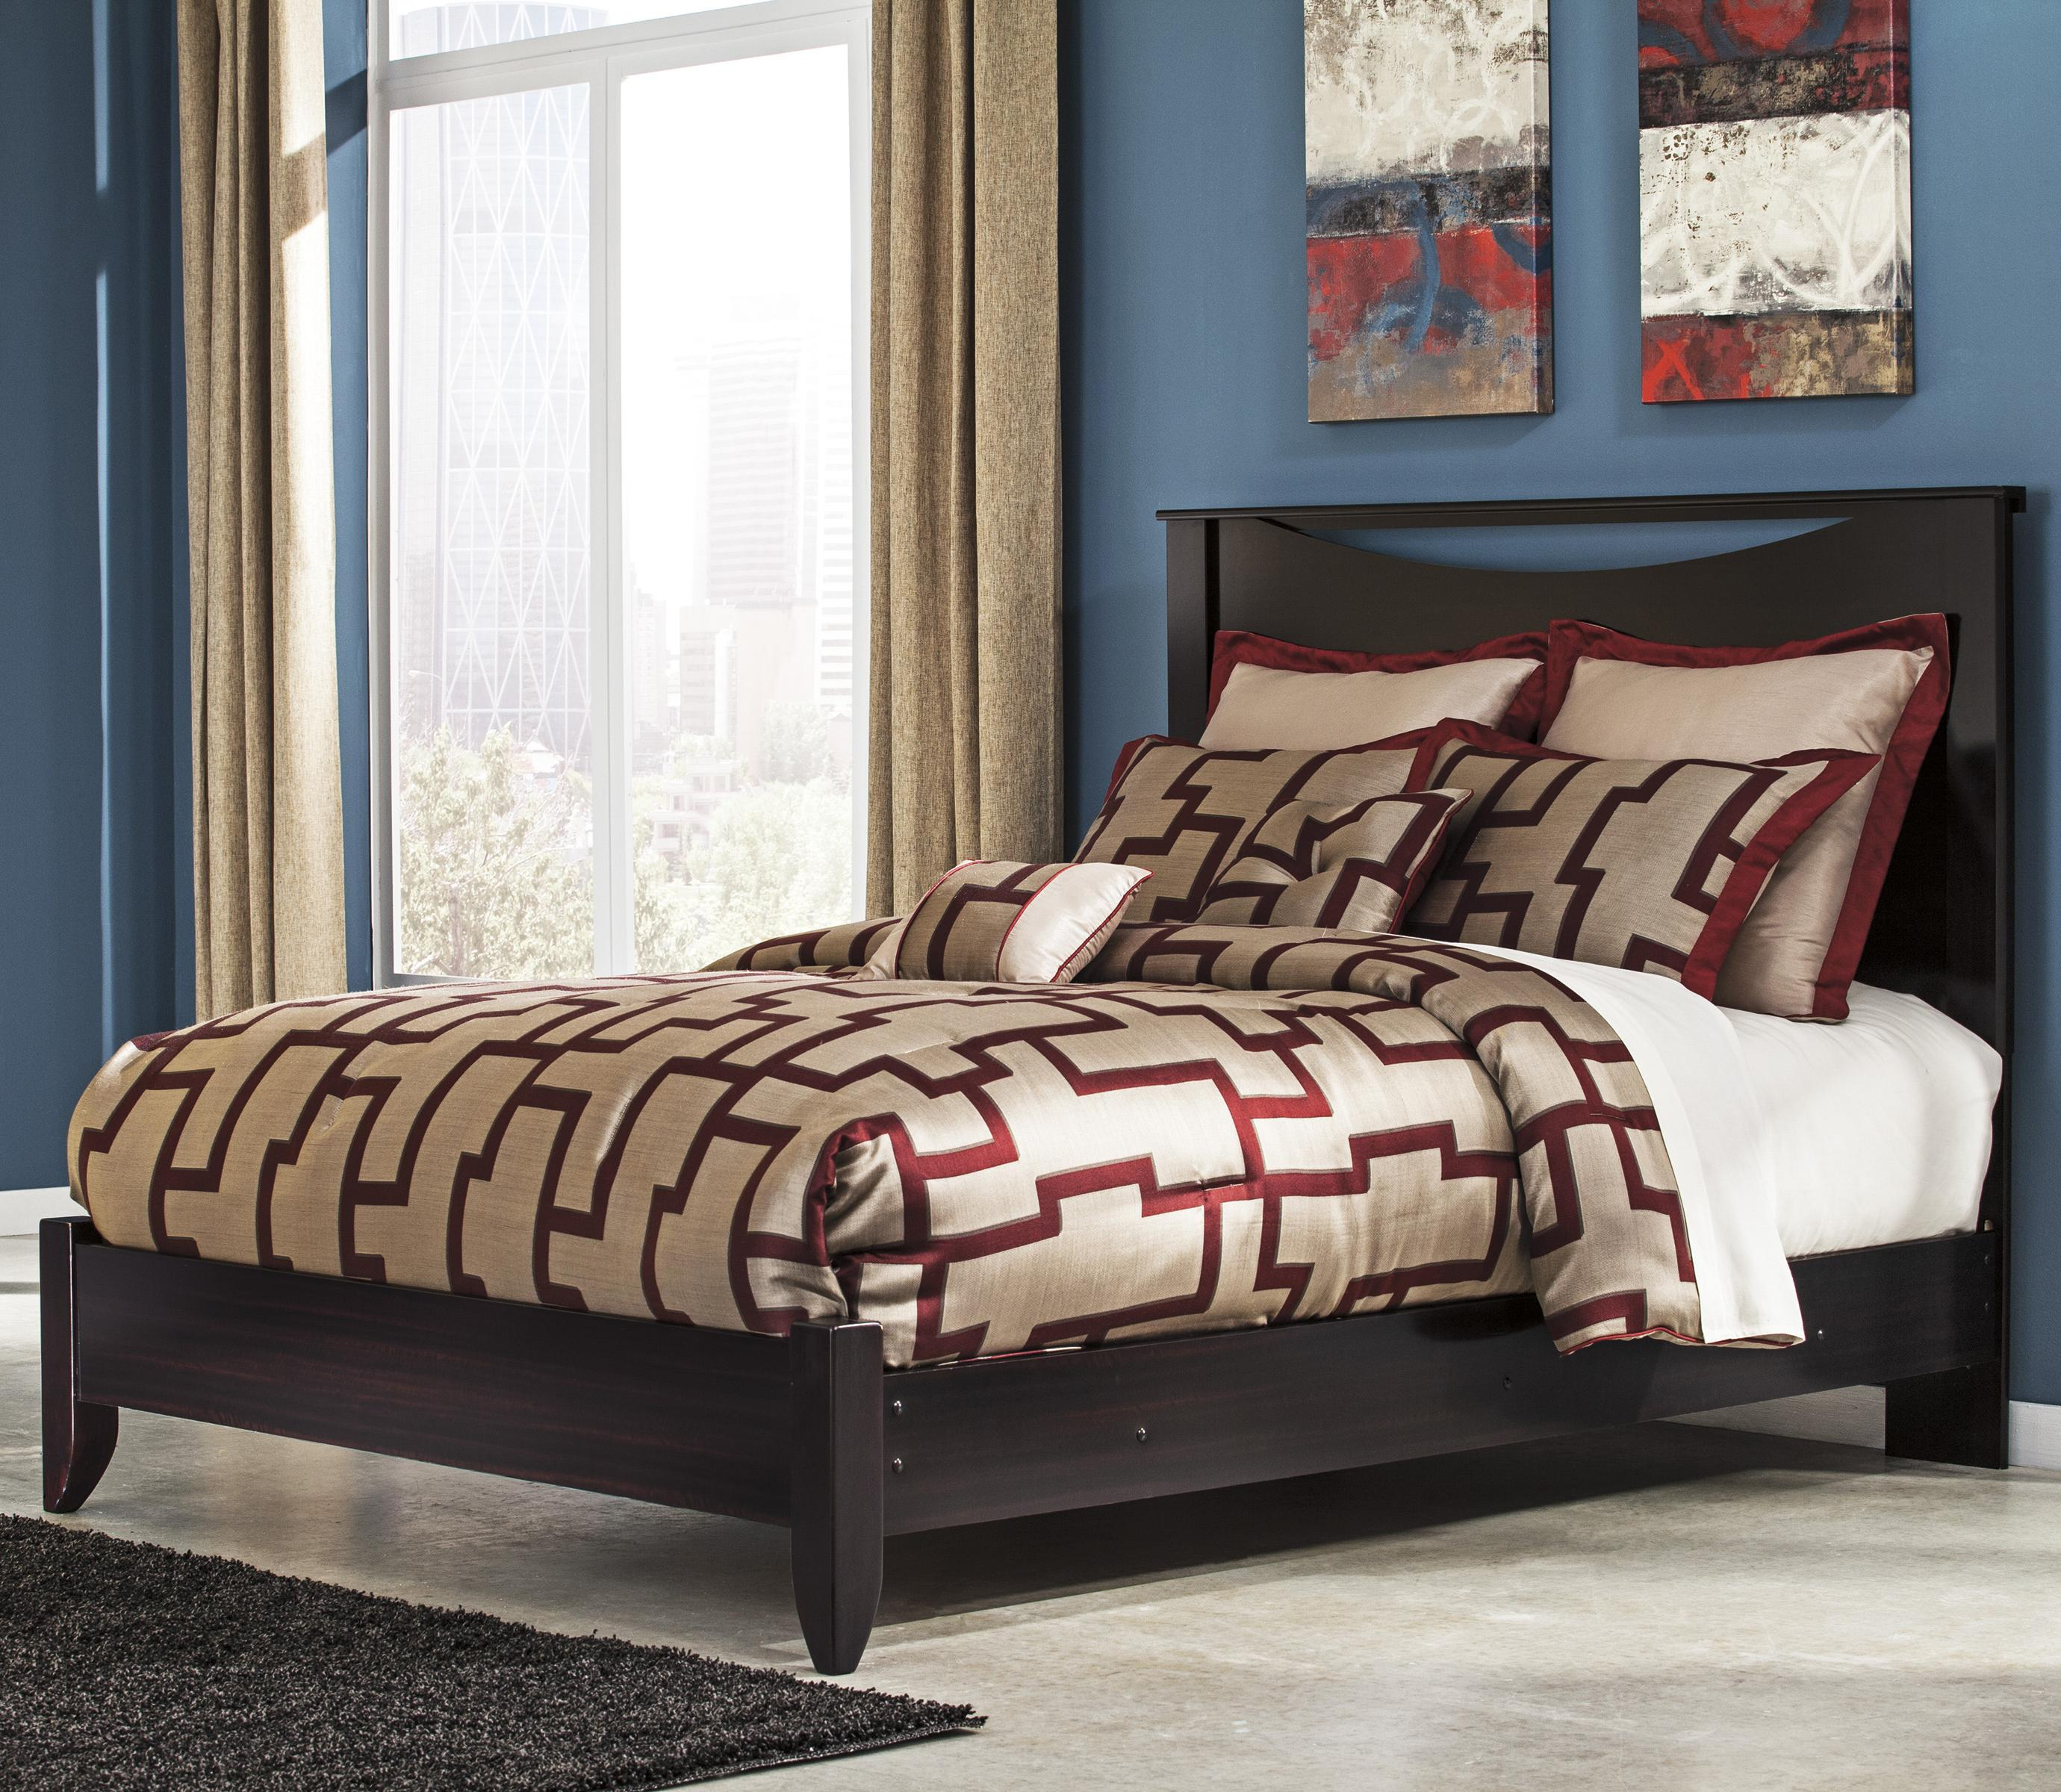 Signature Design By Ashley Zanbury Queen Bed With Low Profile Footboard Furniture And